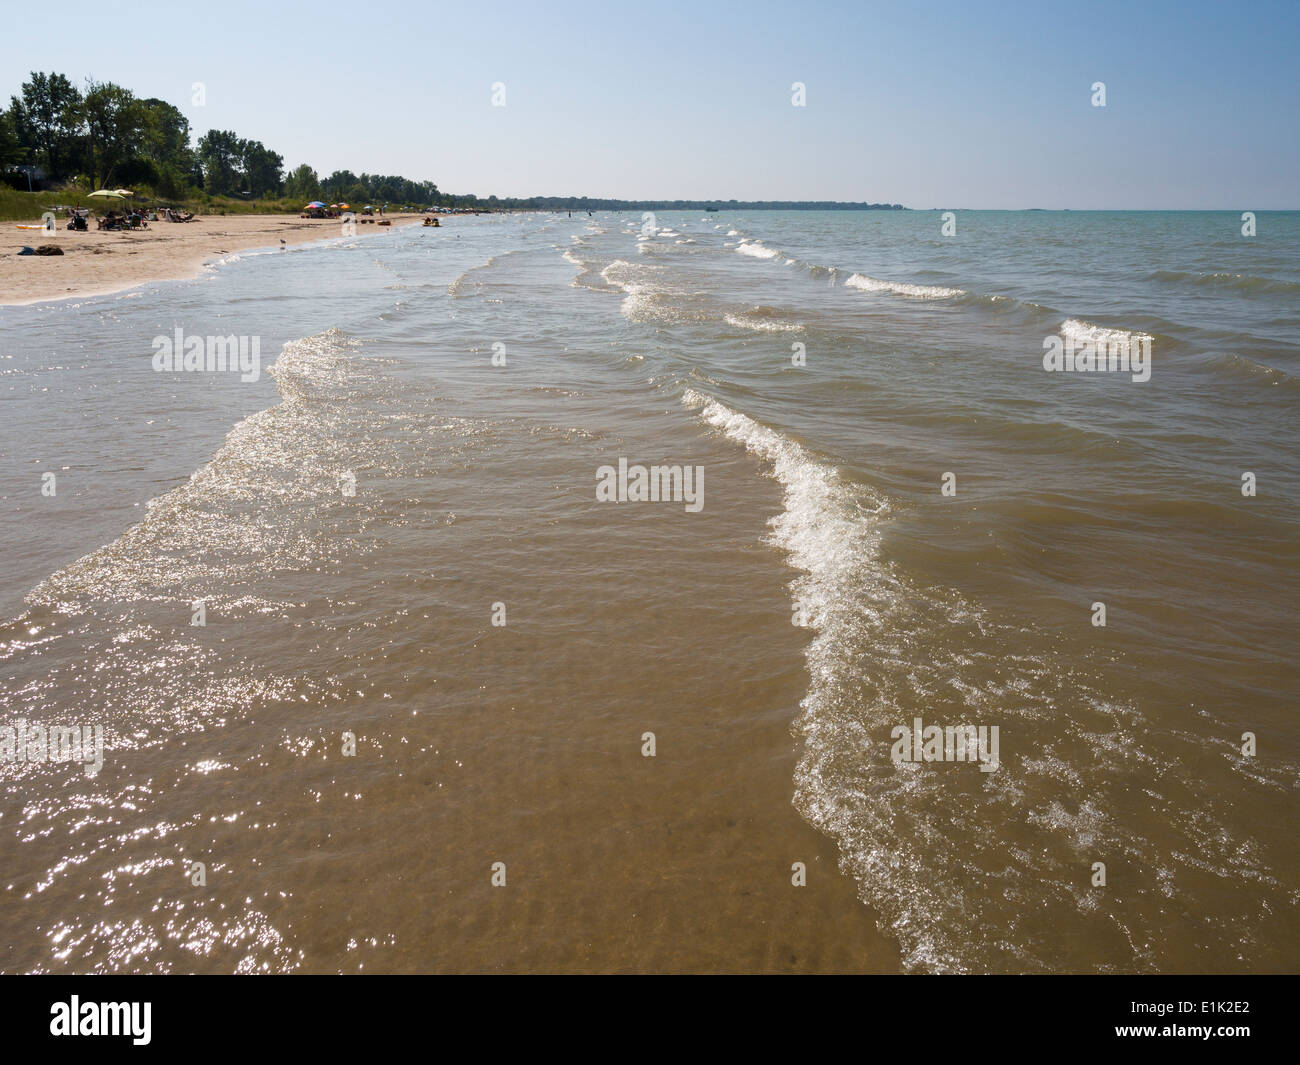 Summer at the Lake Huron beach. Gentle Waves roll in on Ipperwash Beach while sunbathers line the shore. - Stock Image